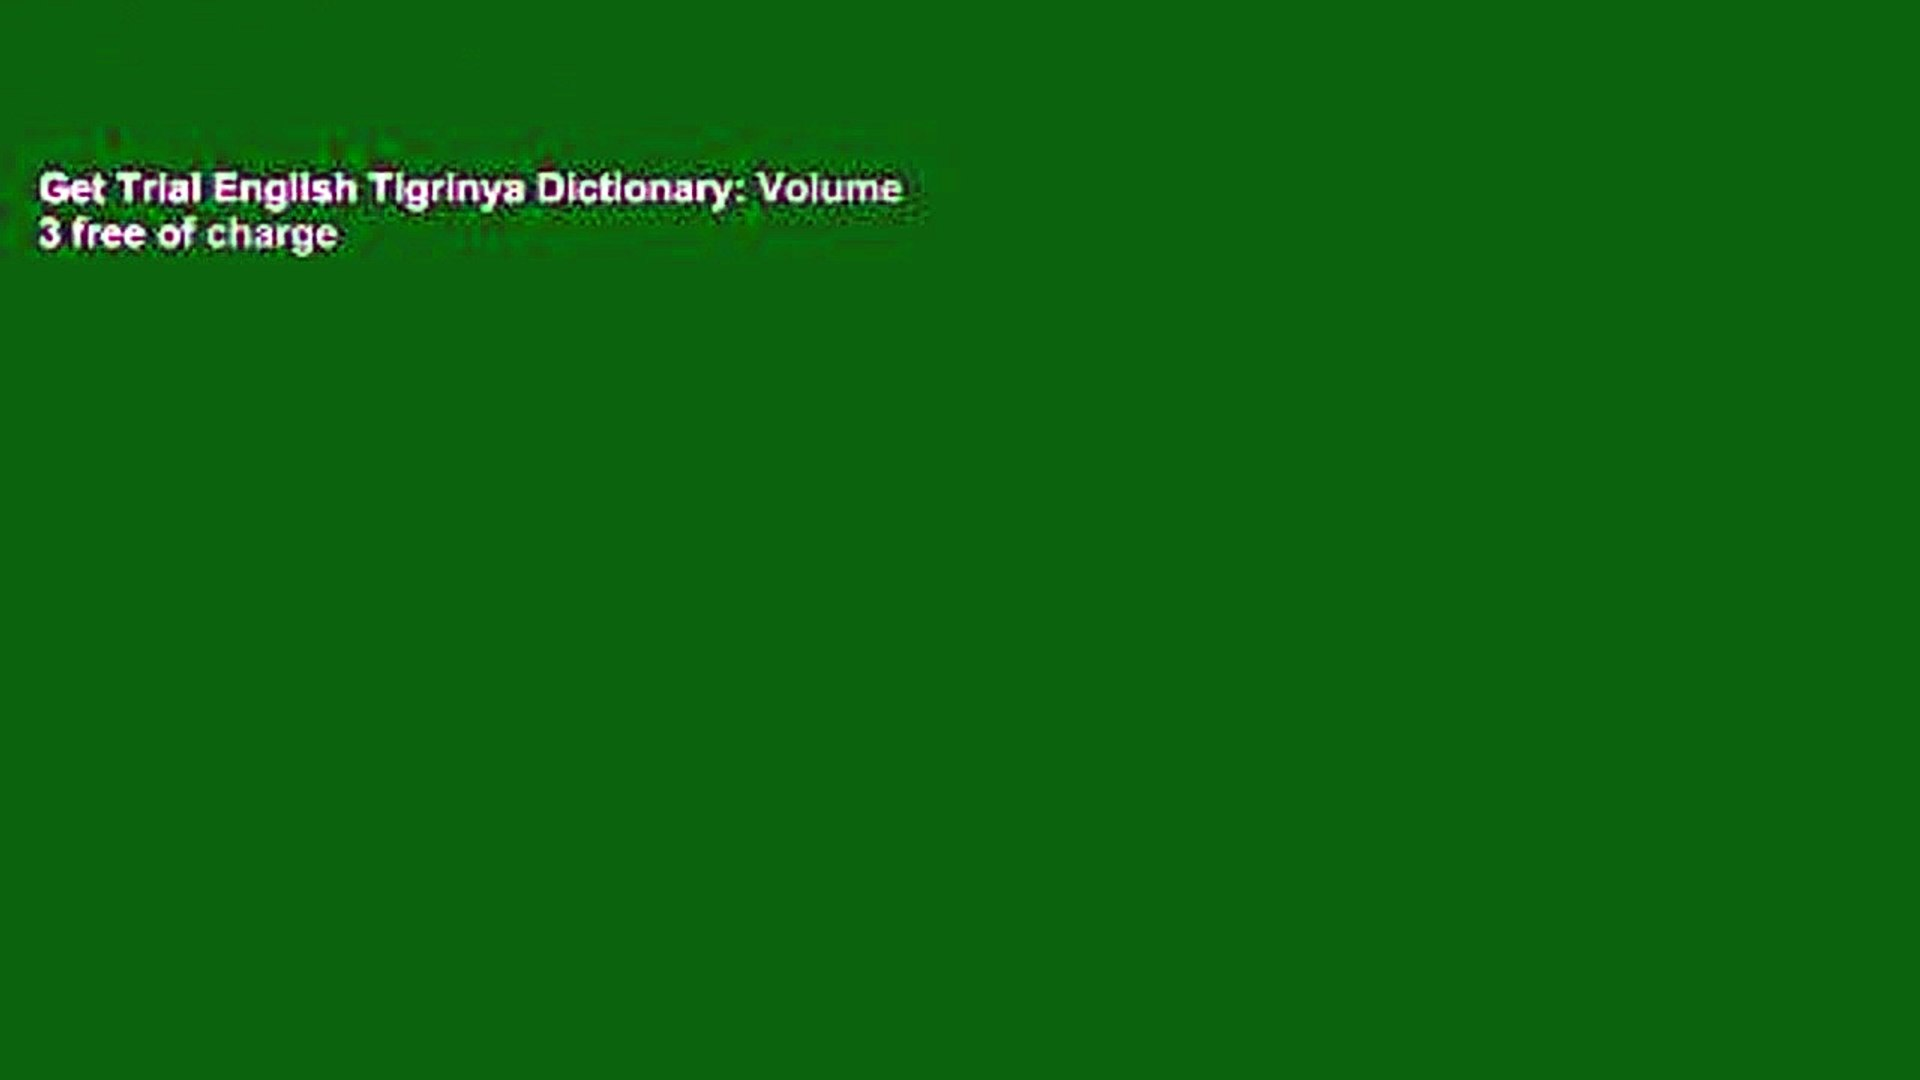 Get Trial English Tigrinya Dictionary: Volume 3 free of charge